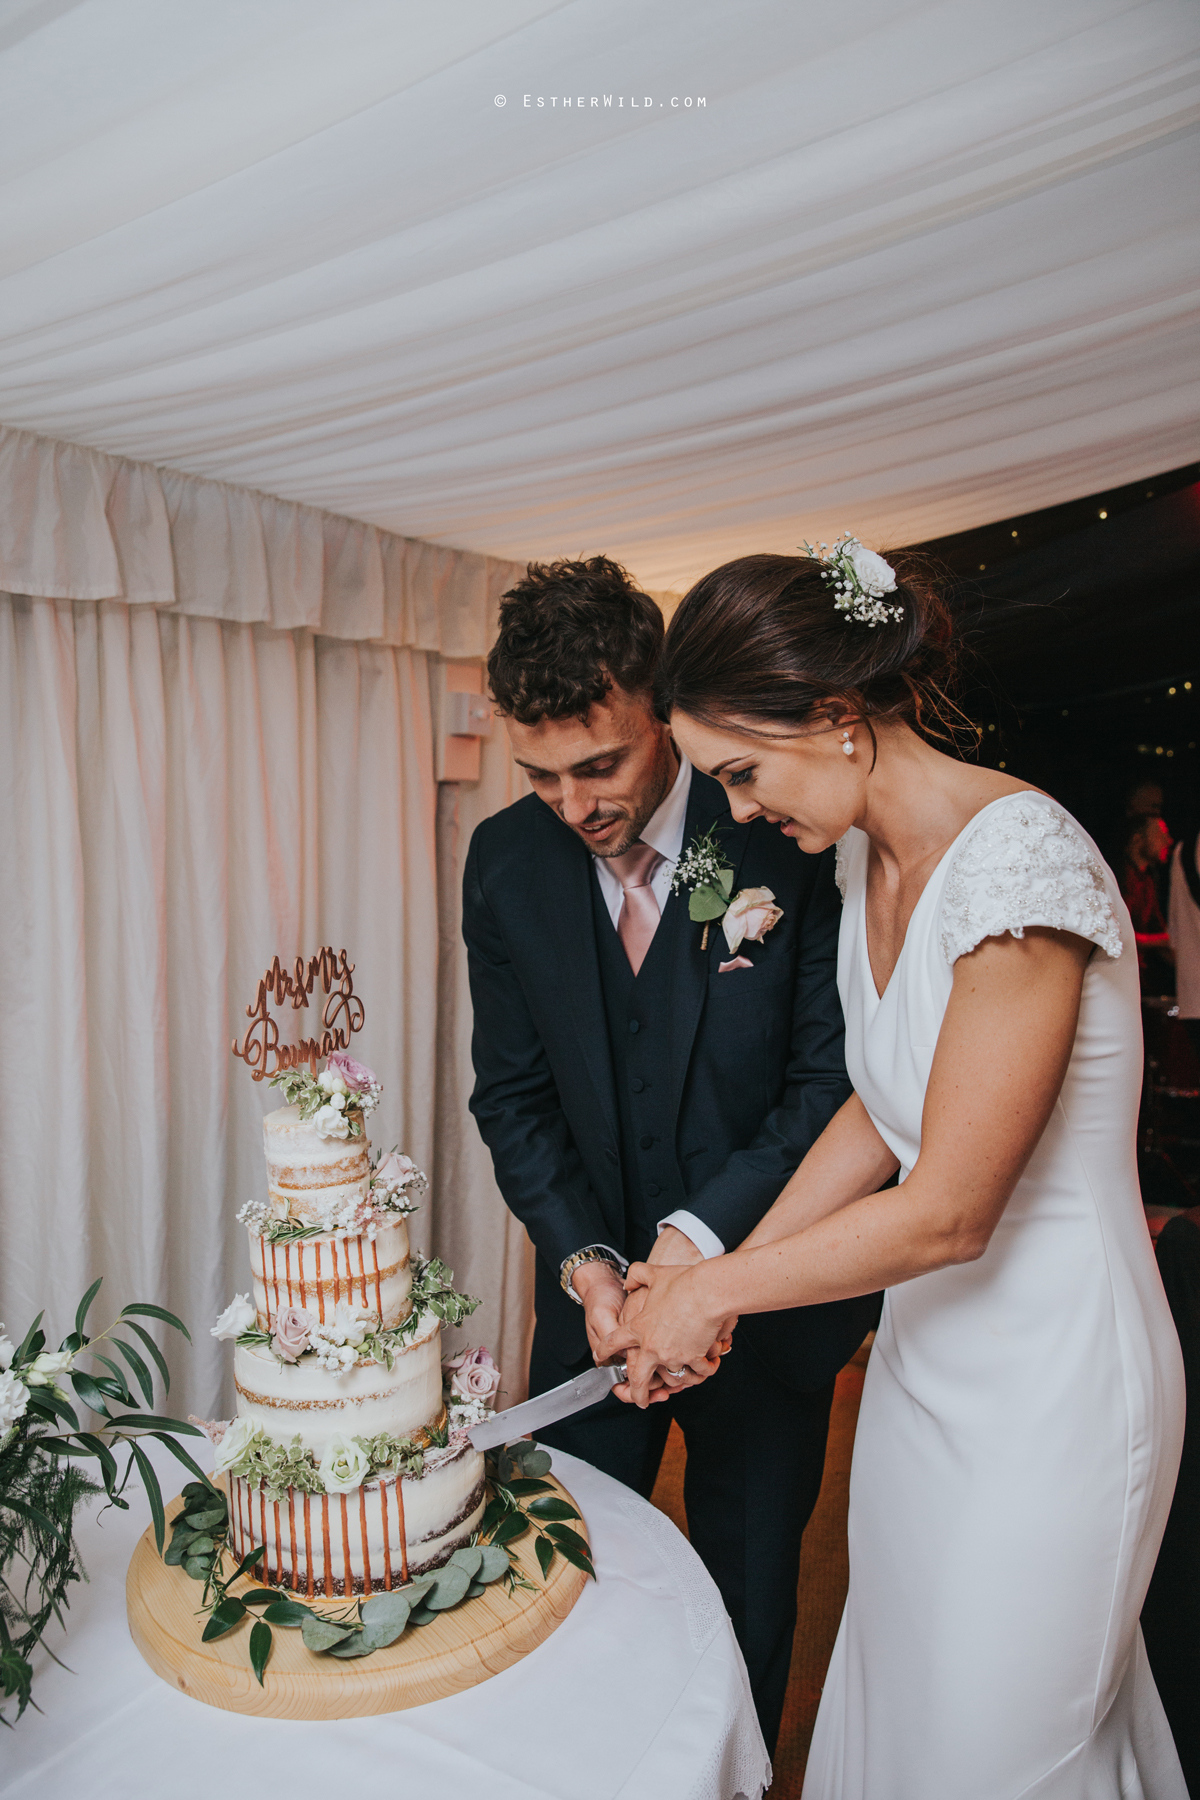 Wootton_Wedding_Copyright_Esther_Wild_Photographer_IMG_3540.jpg